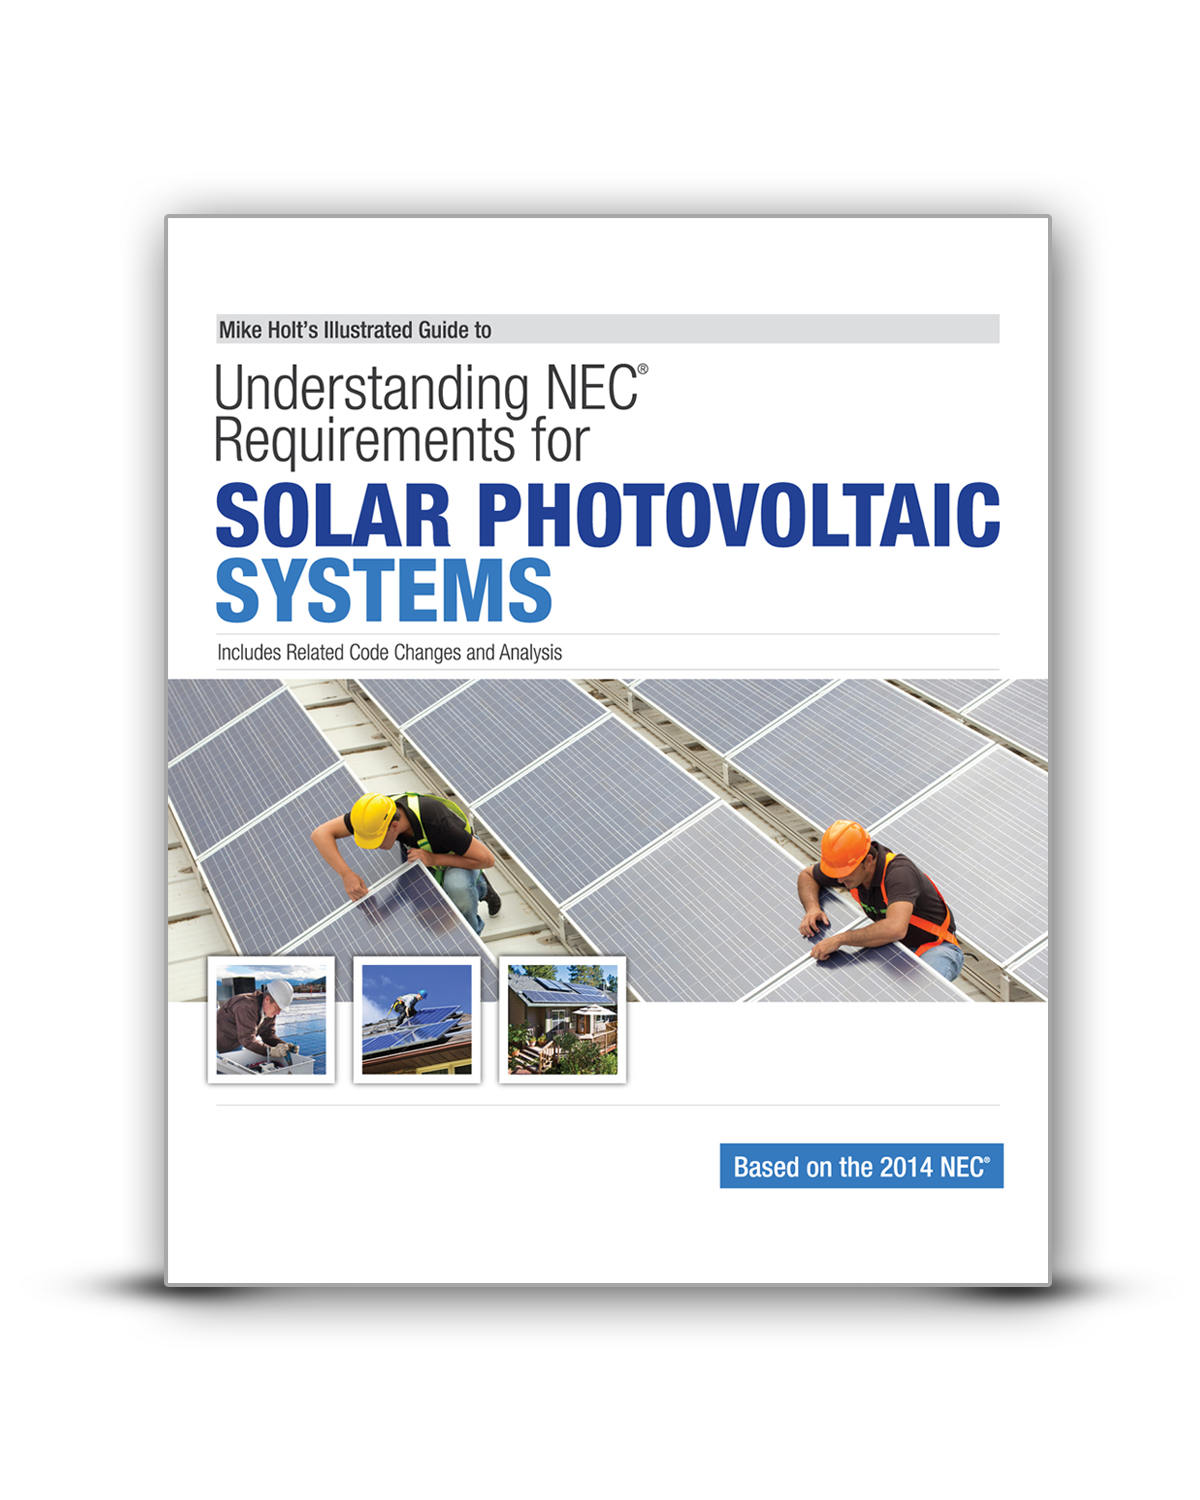 Mike Holt Solar Photovoltaic Systems 2014 Understanding